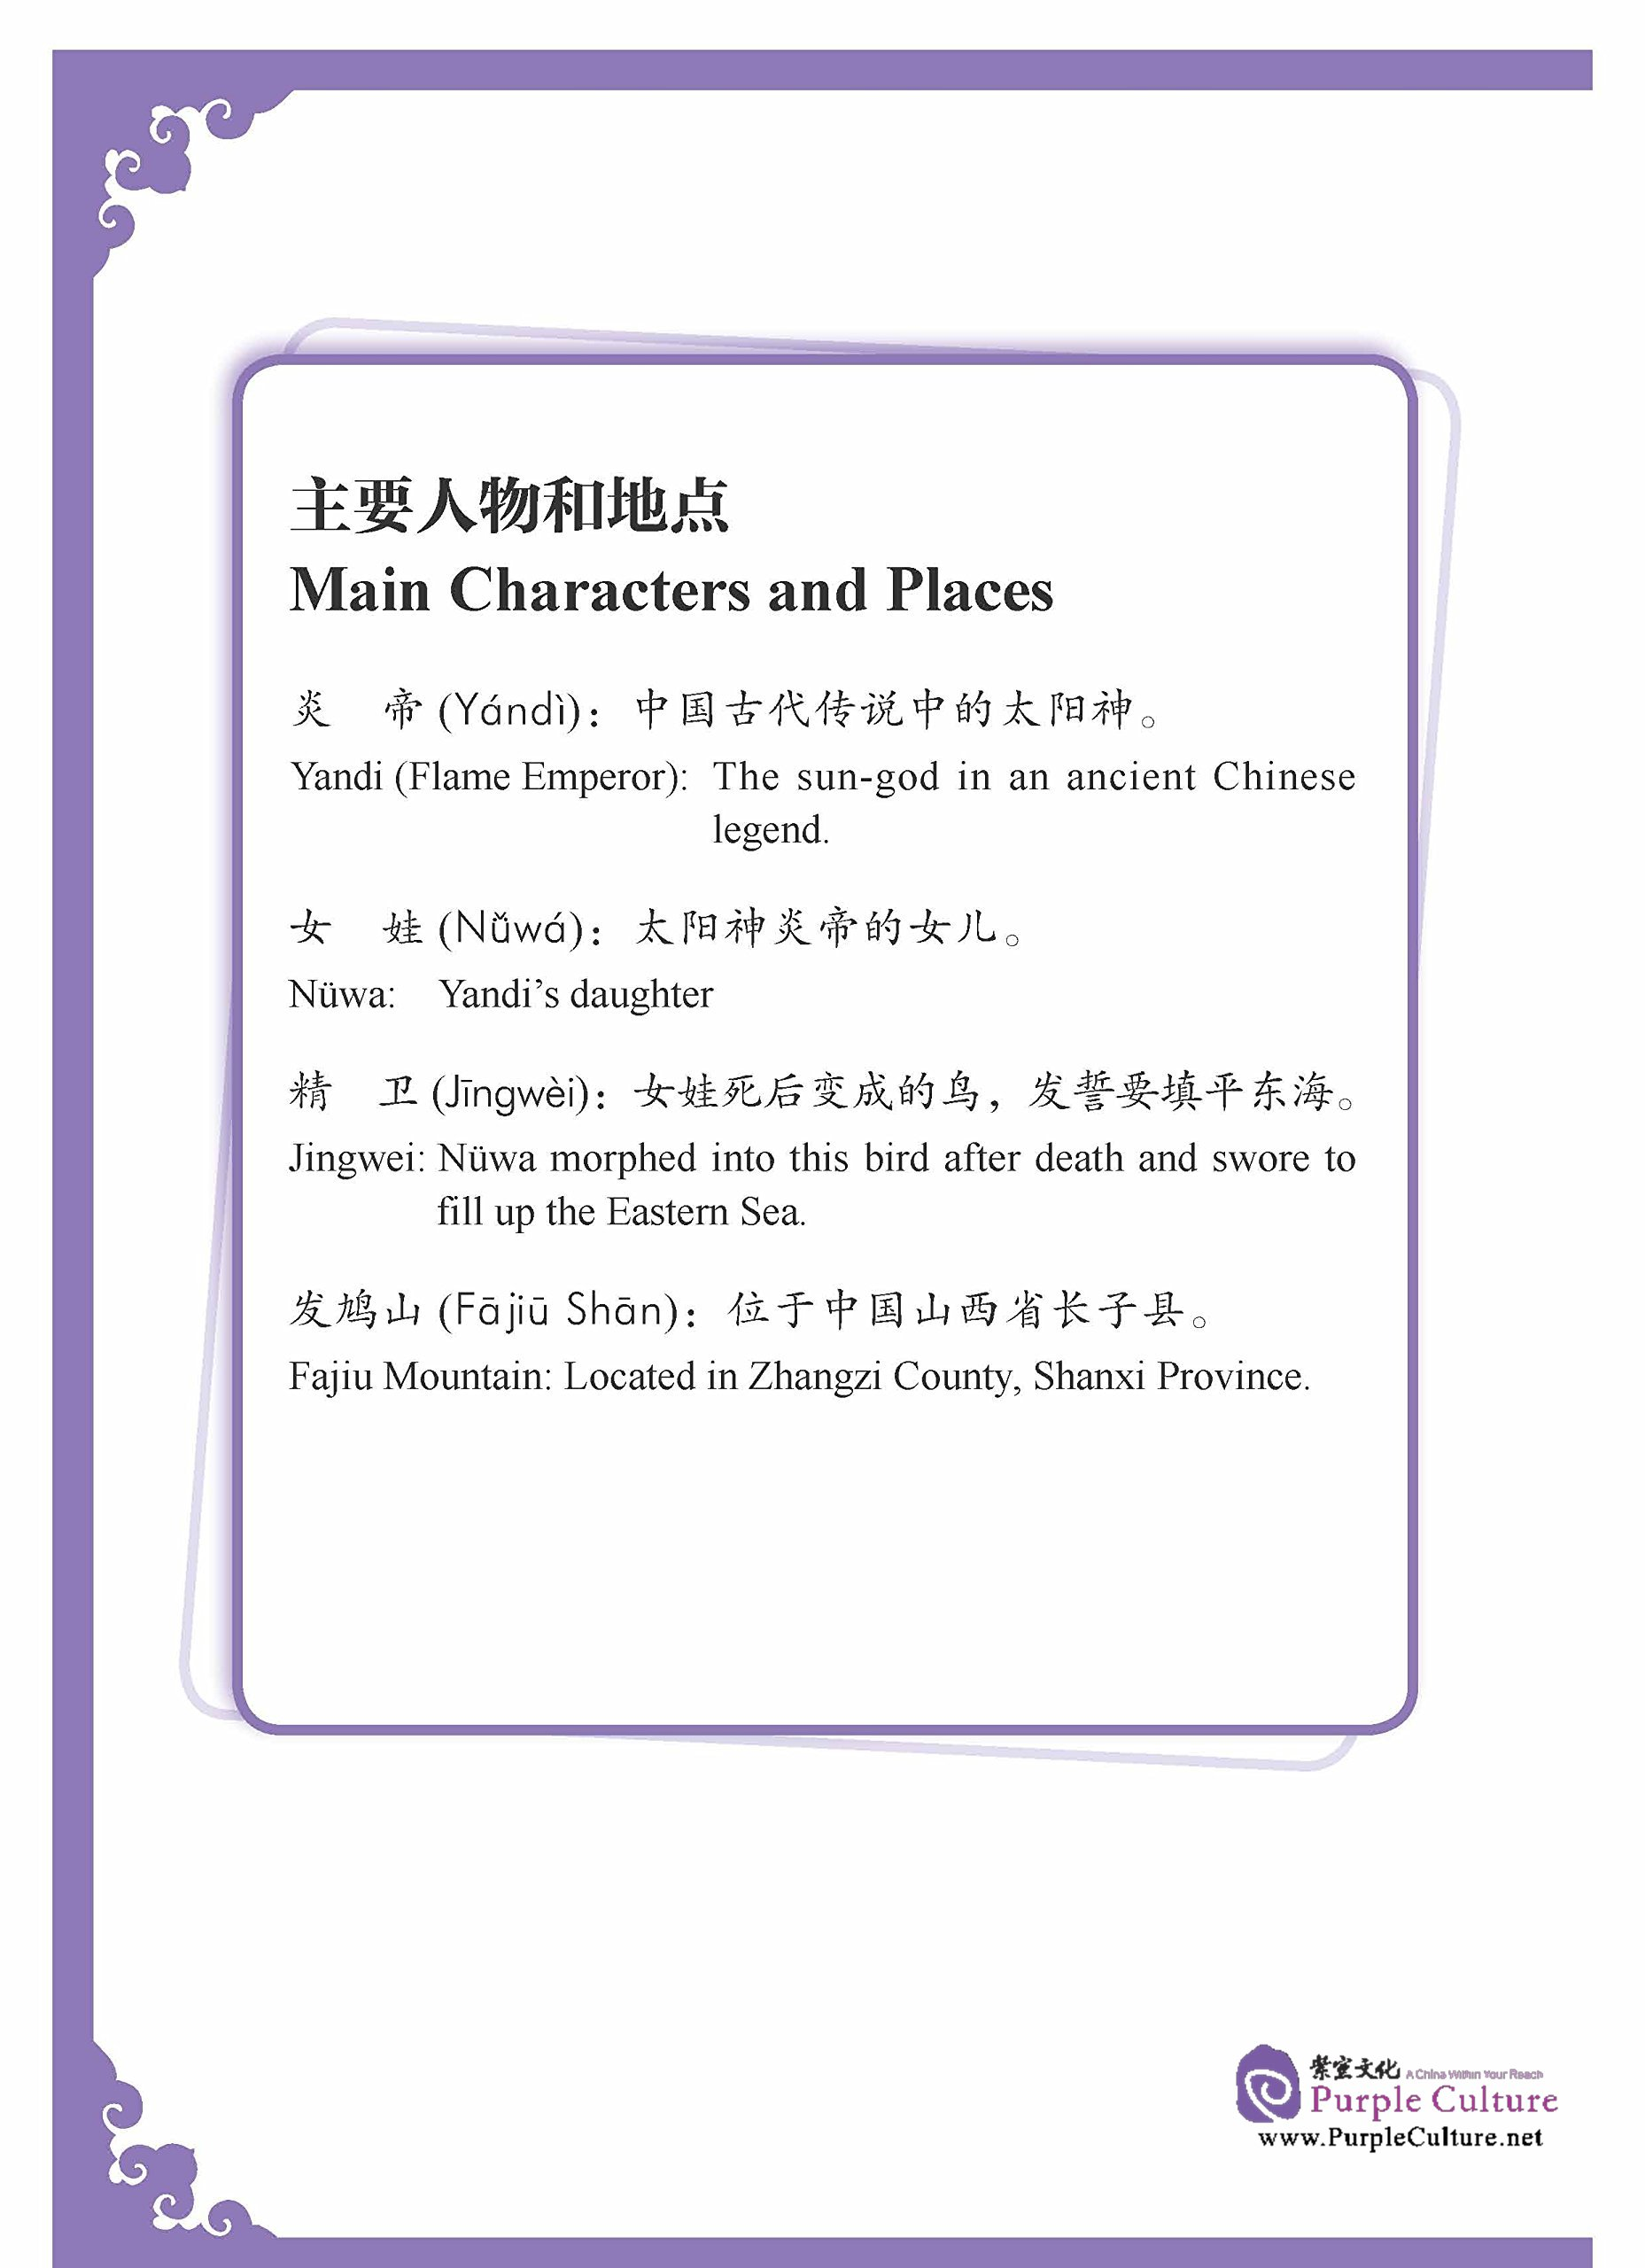 Sample pages of Rainbow Bridge Graded Chinese Reader: Starter: 150 Vocabulary words: Jingwei Tries to Fill Up the Sea (ISBN:7513810362, 9787513810364)